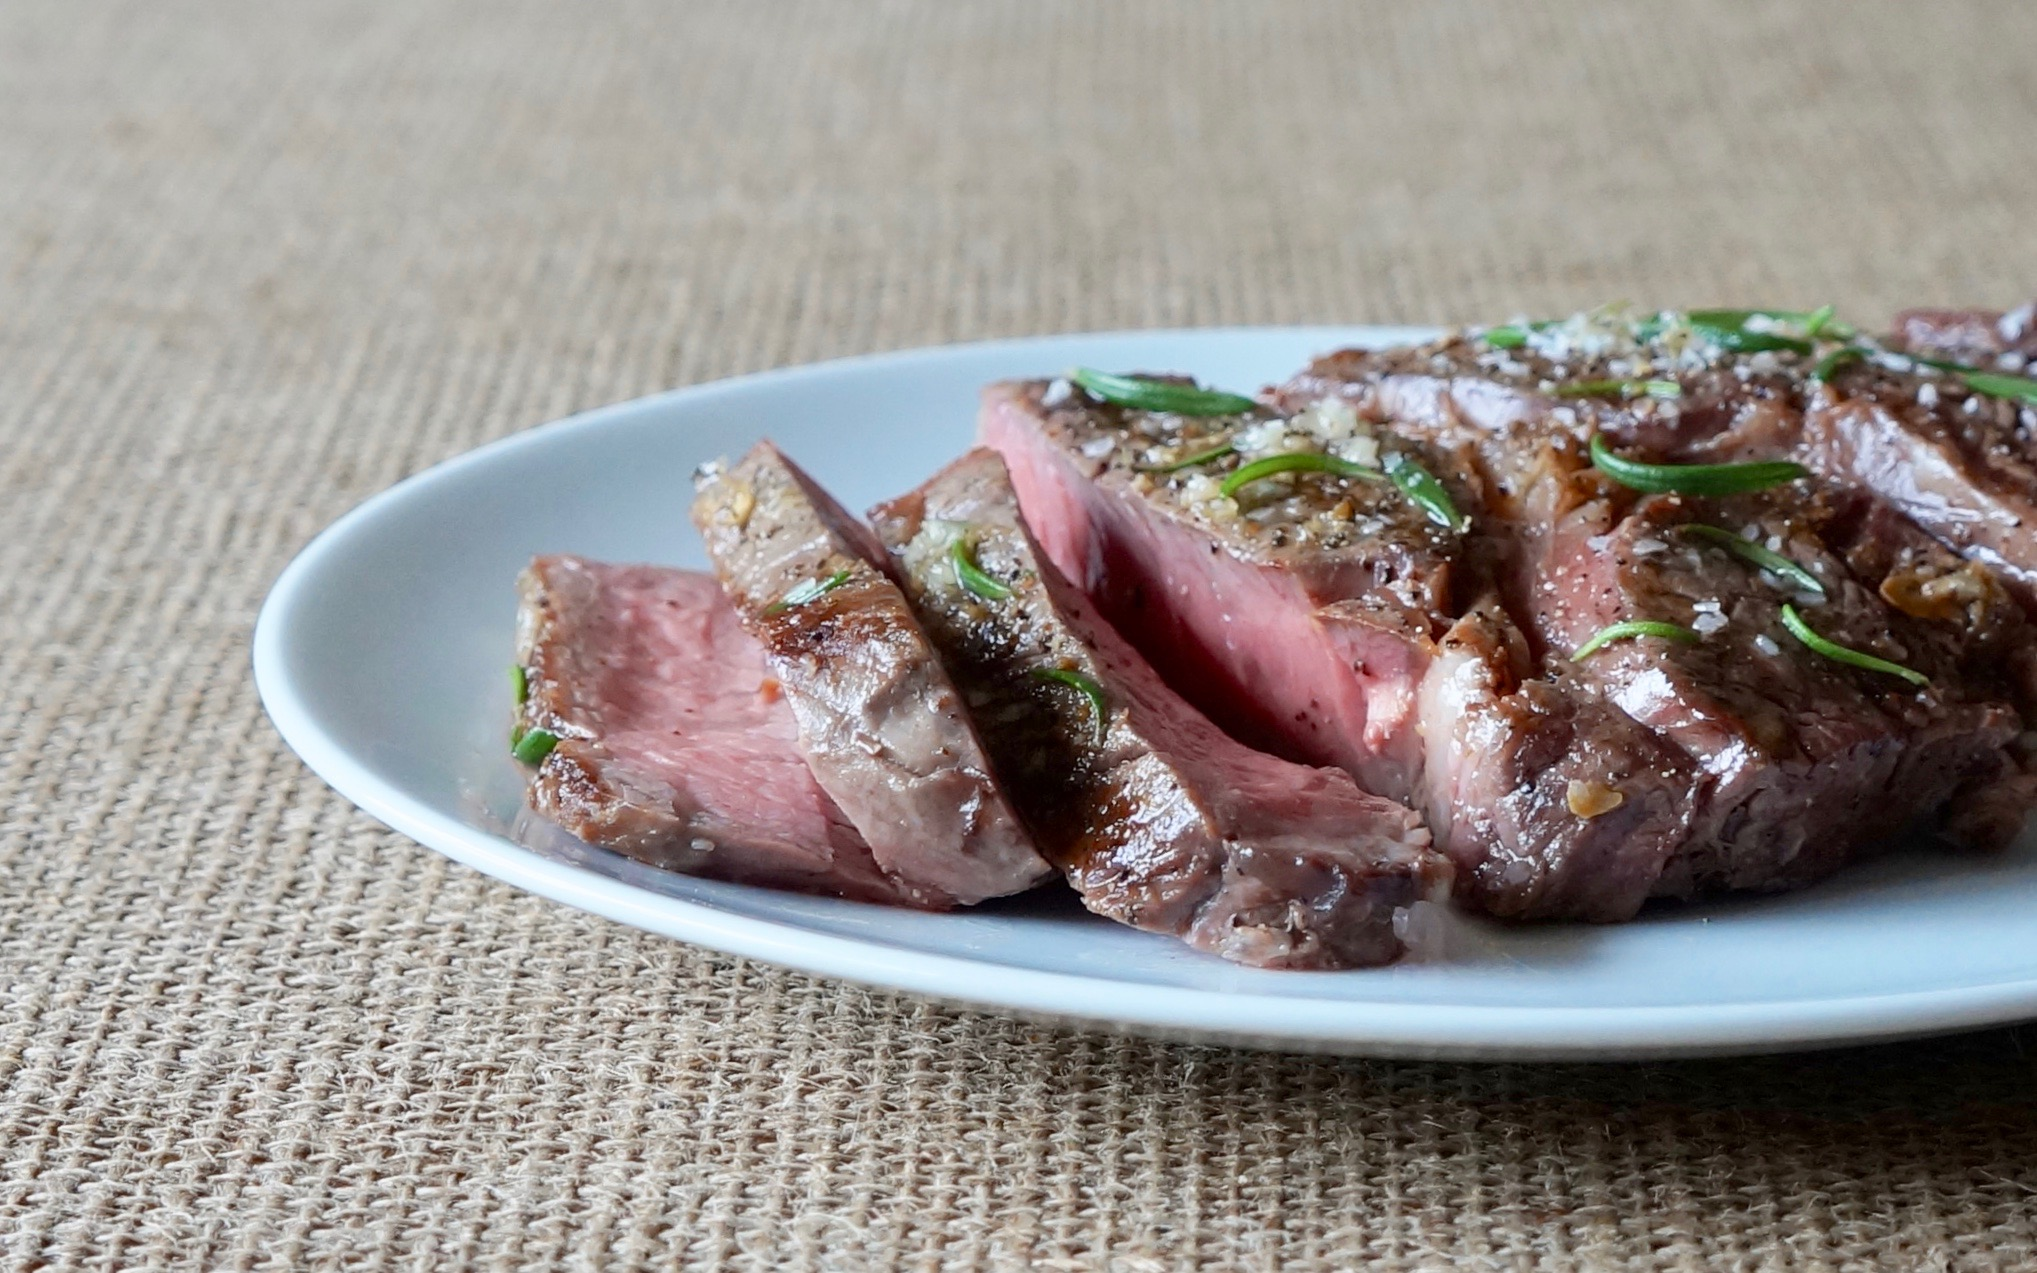 How-To-Make-Pan-Seared-Rosemary-Garlic-Ribeye-Steaks-Rebecca-Gordon-Publisher-Buttermilk-Lipstick-Culinary-Entertaining-Techniques-RebeccaGordon-Pastry-Chef-Birmingham-Alabama